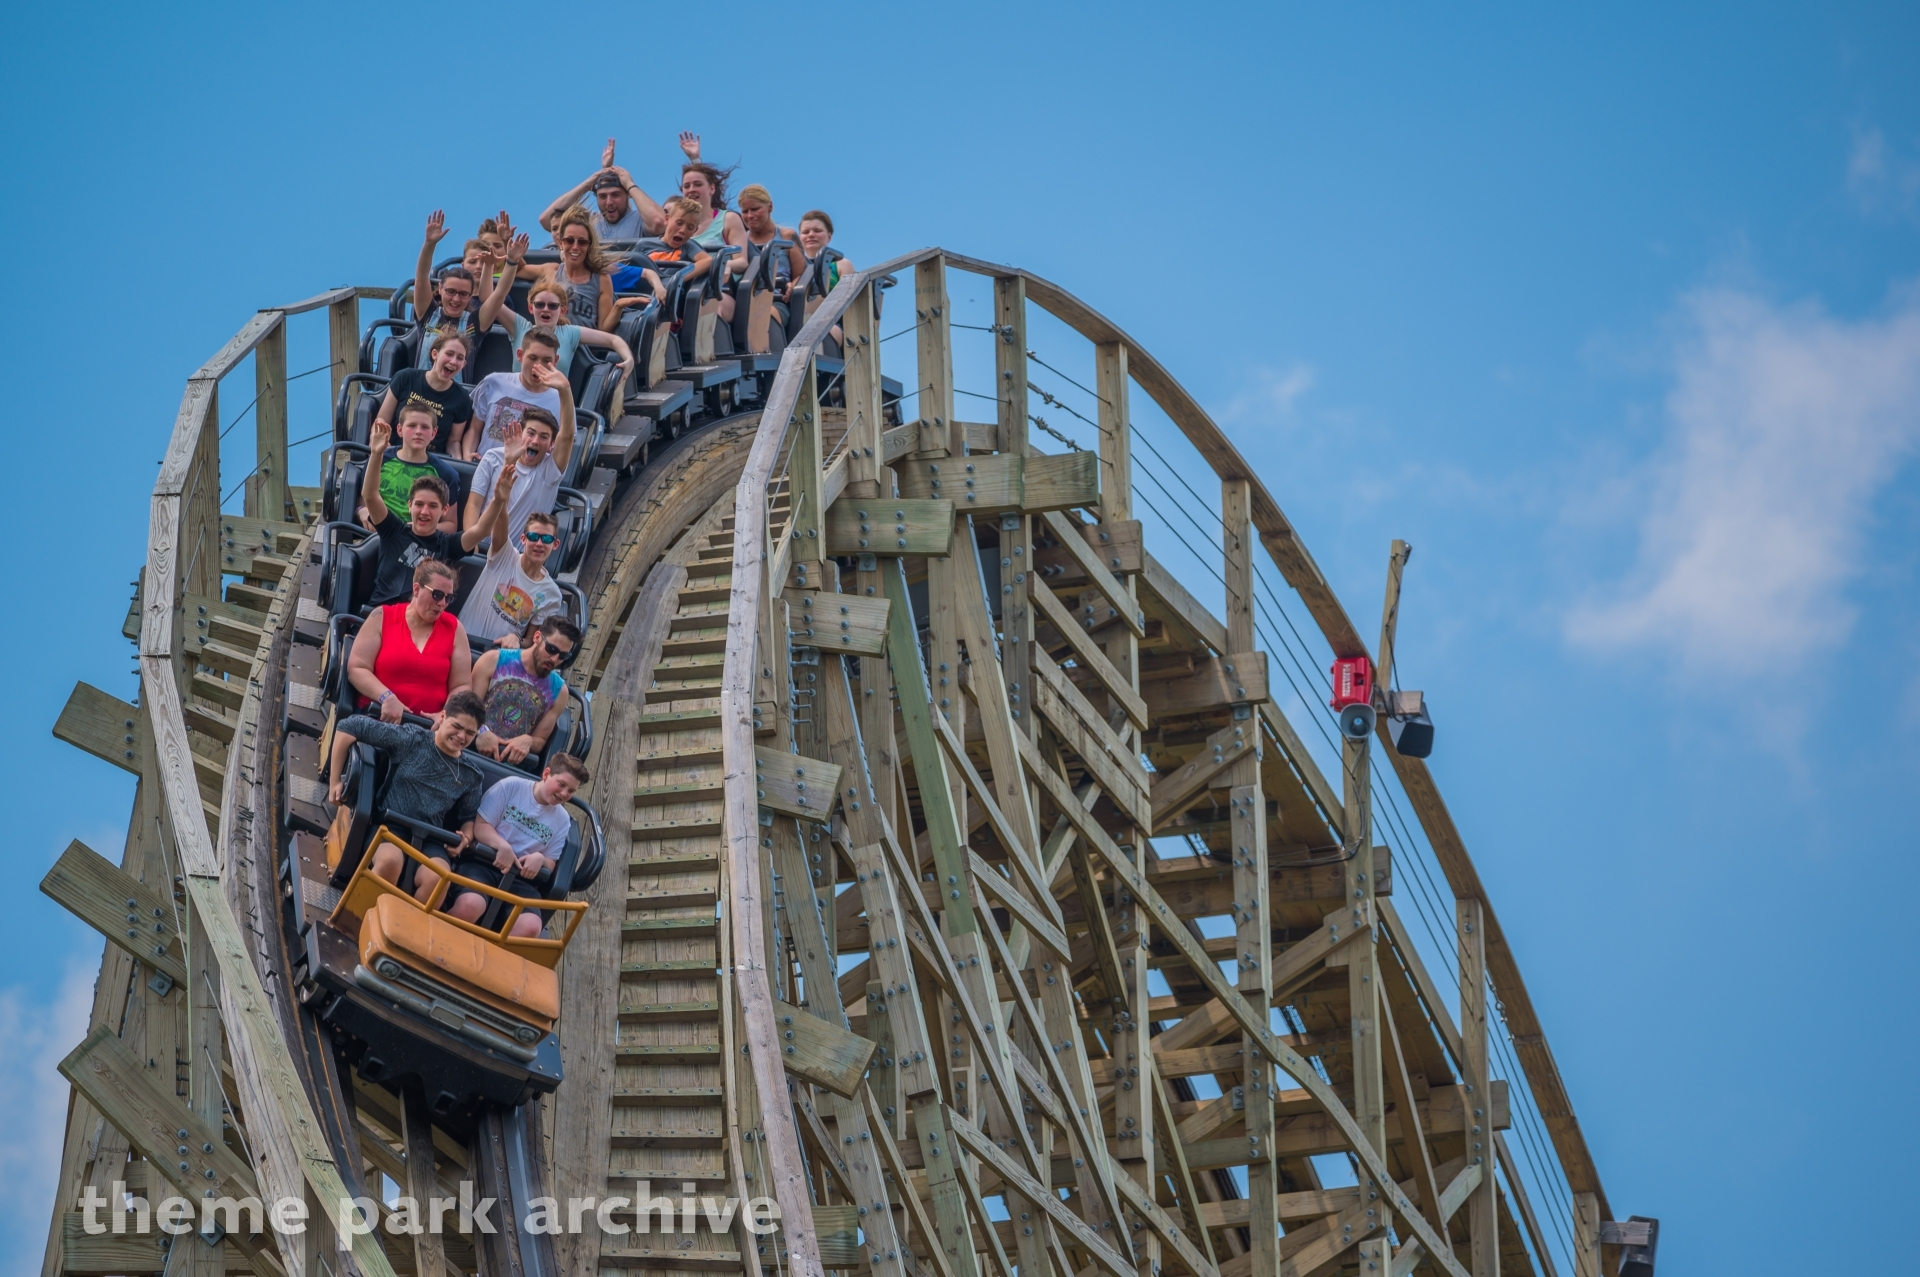 Mystic Timbers at Kings Island | Theme Park Archive